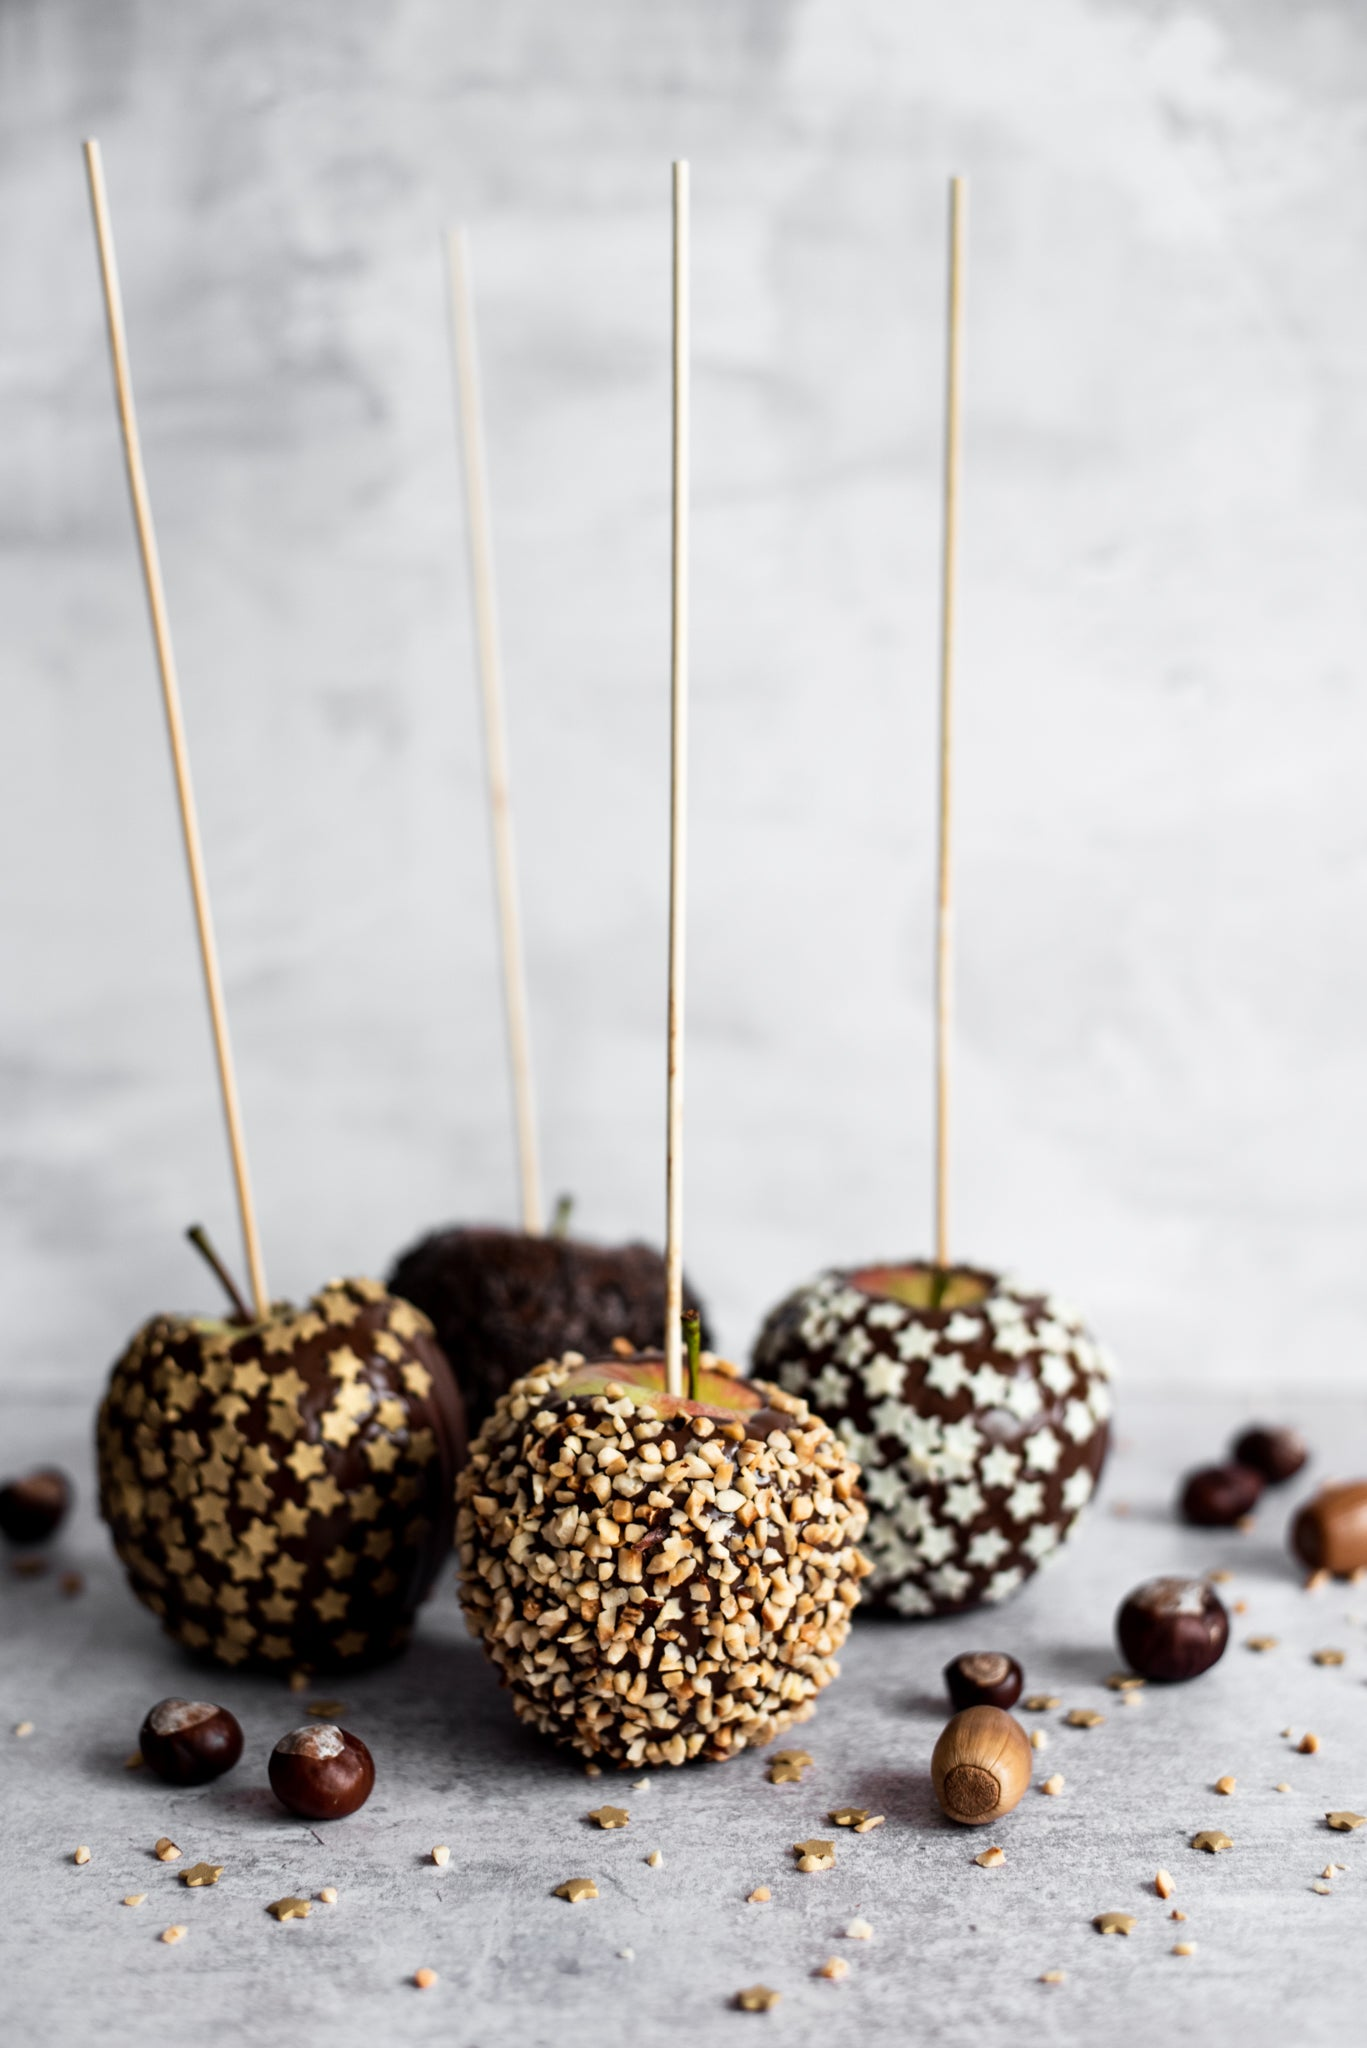 Chocolate-Dipped-Apples-WEB-RES-7.jpg